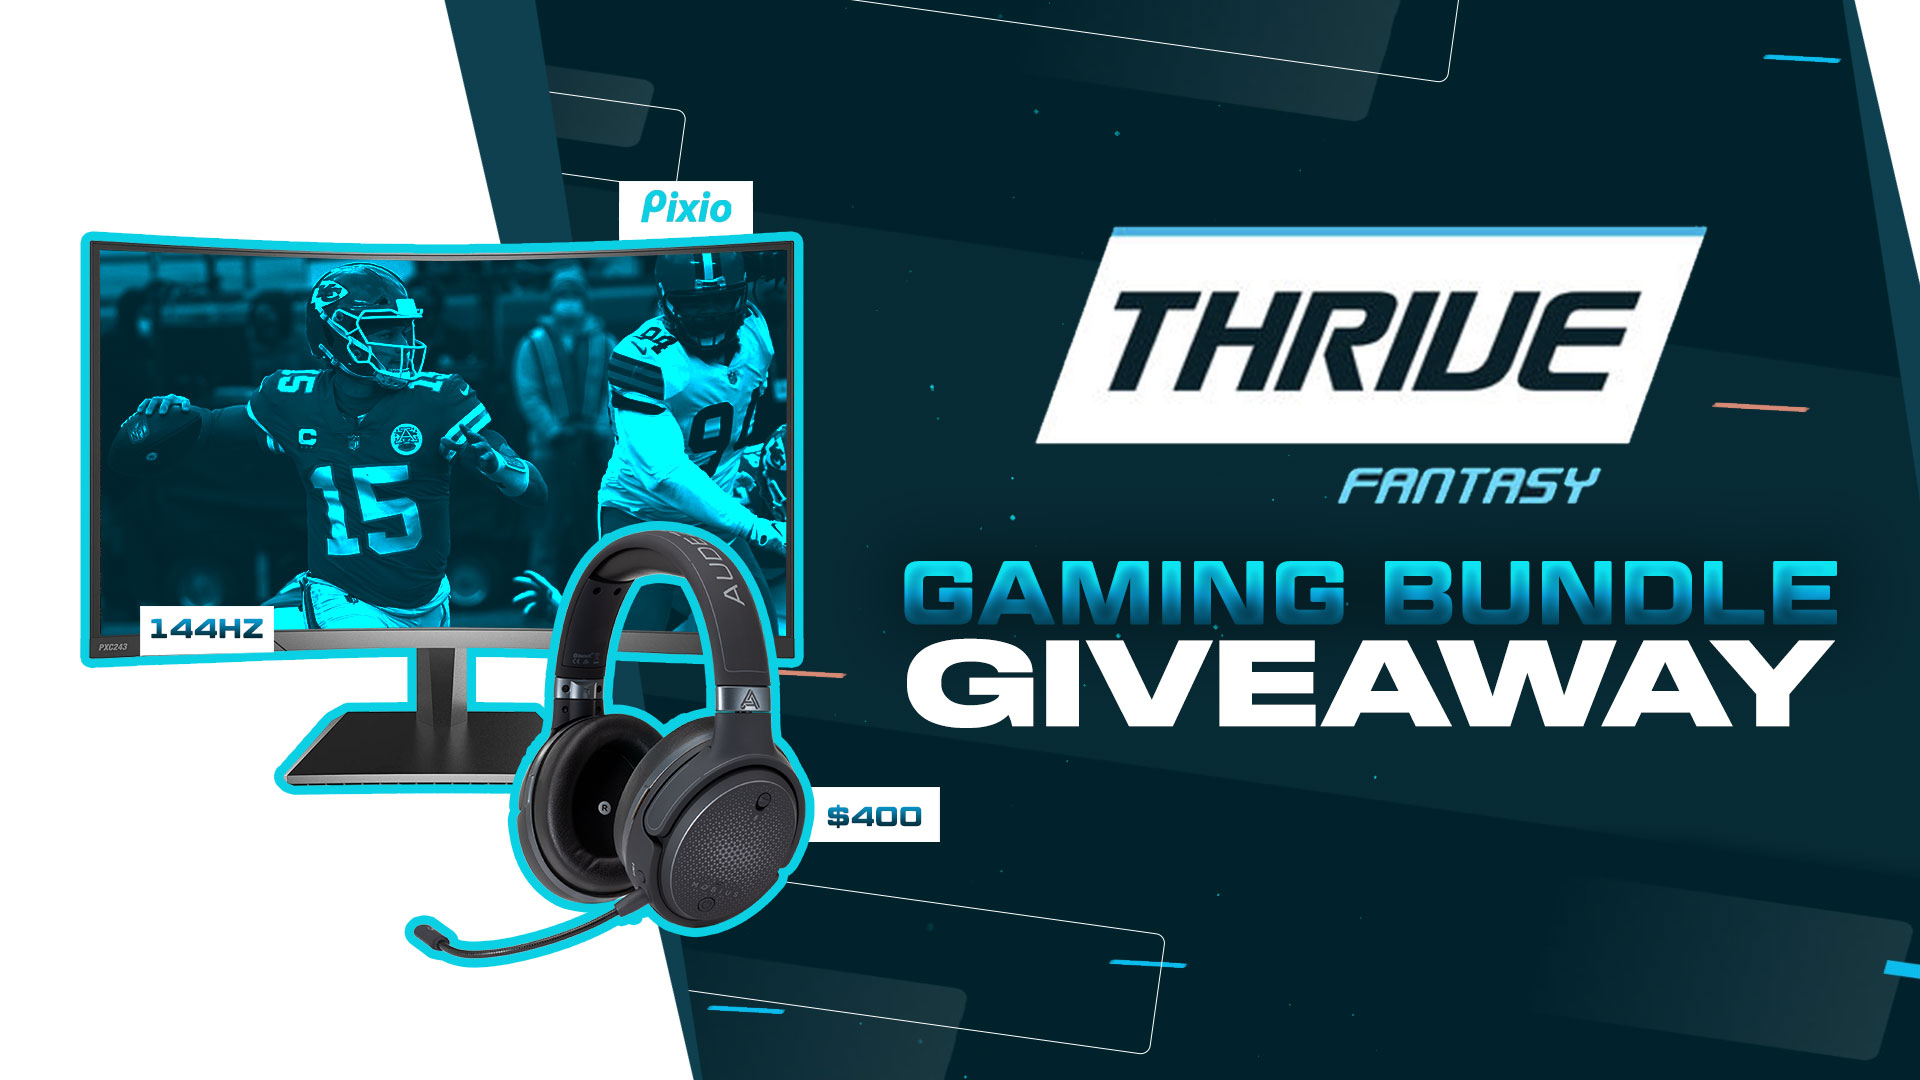 Pixio 144Hz Curved Gaming Monitor & Audeze Mobius Headset Giveaway